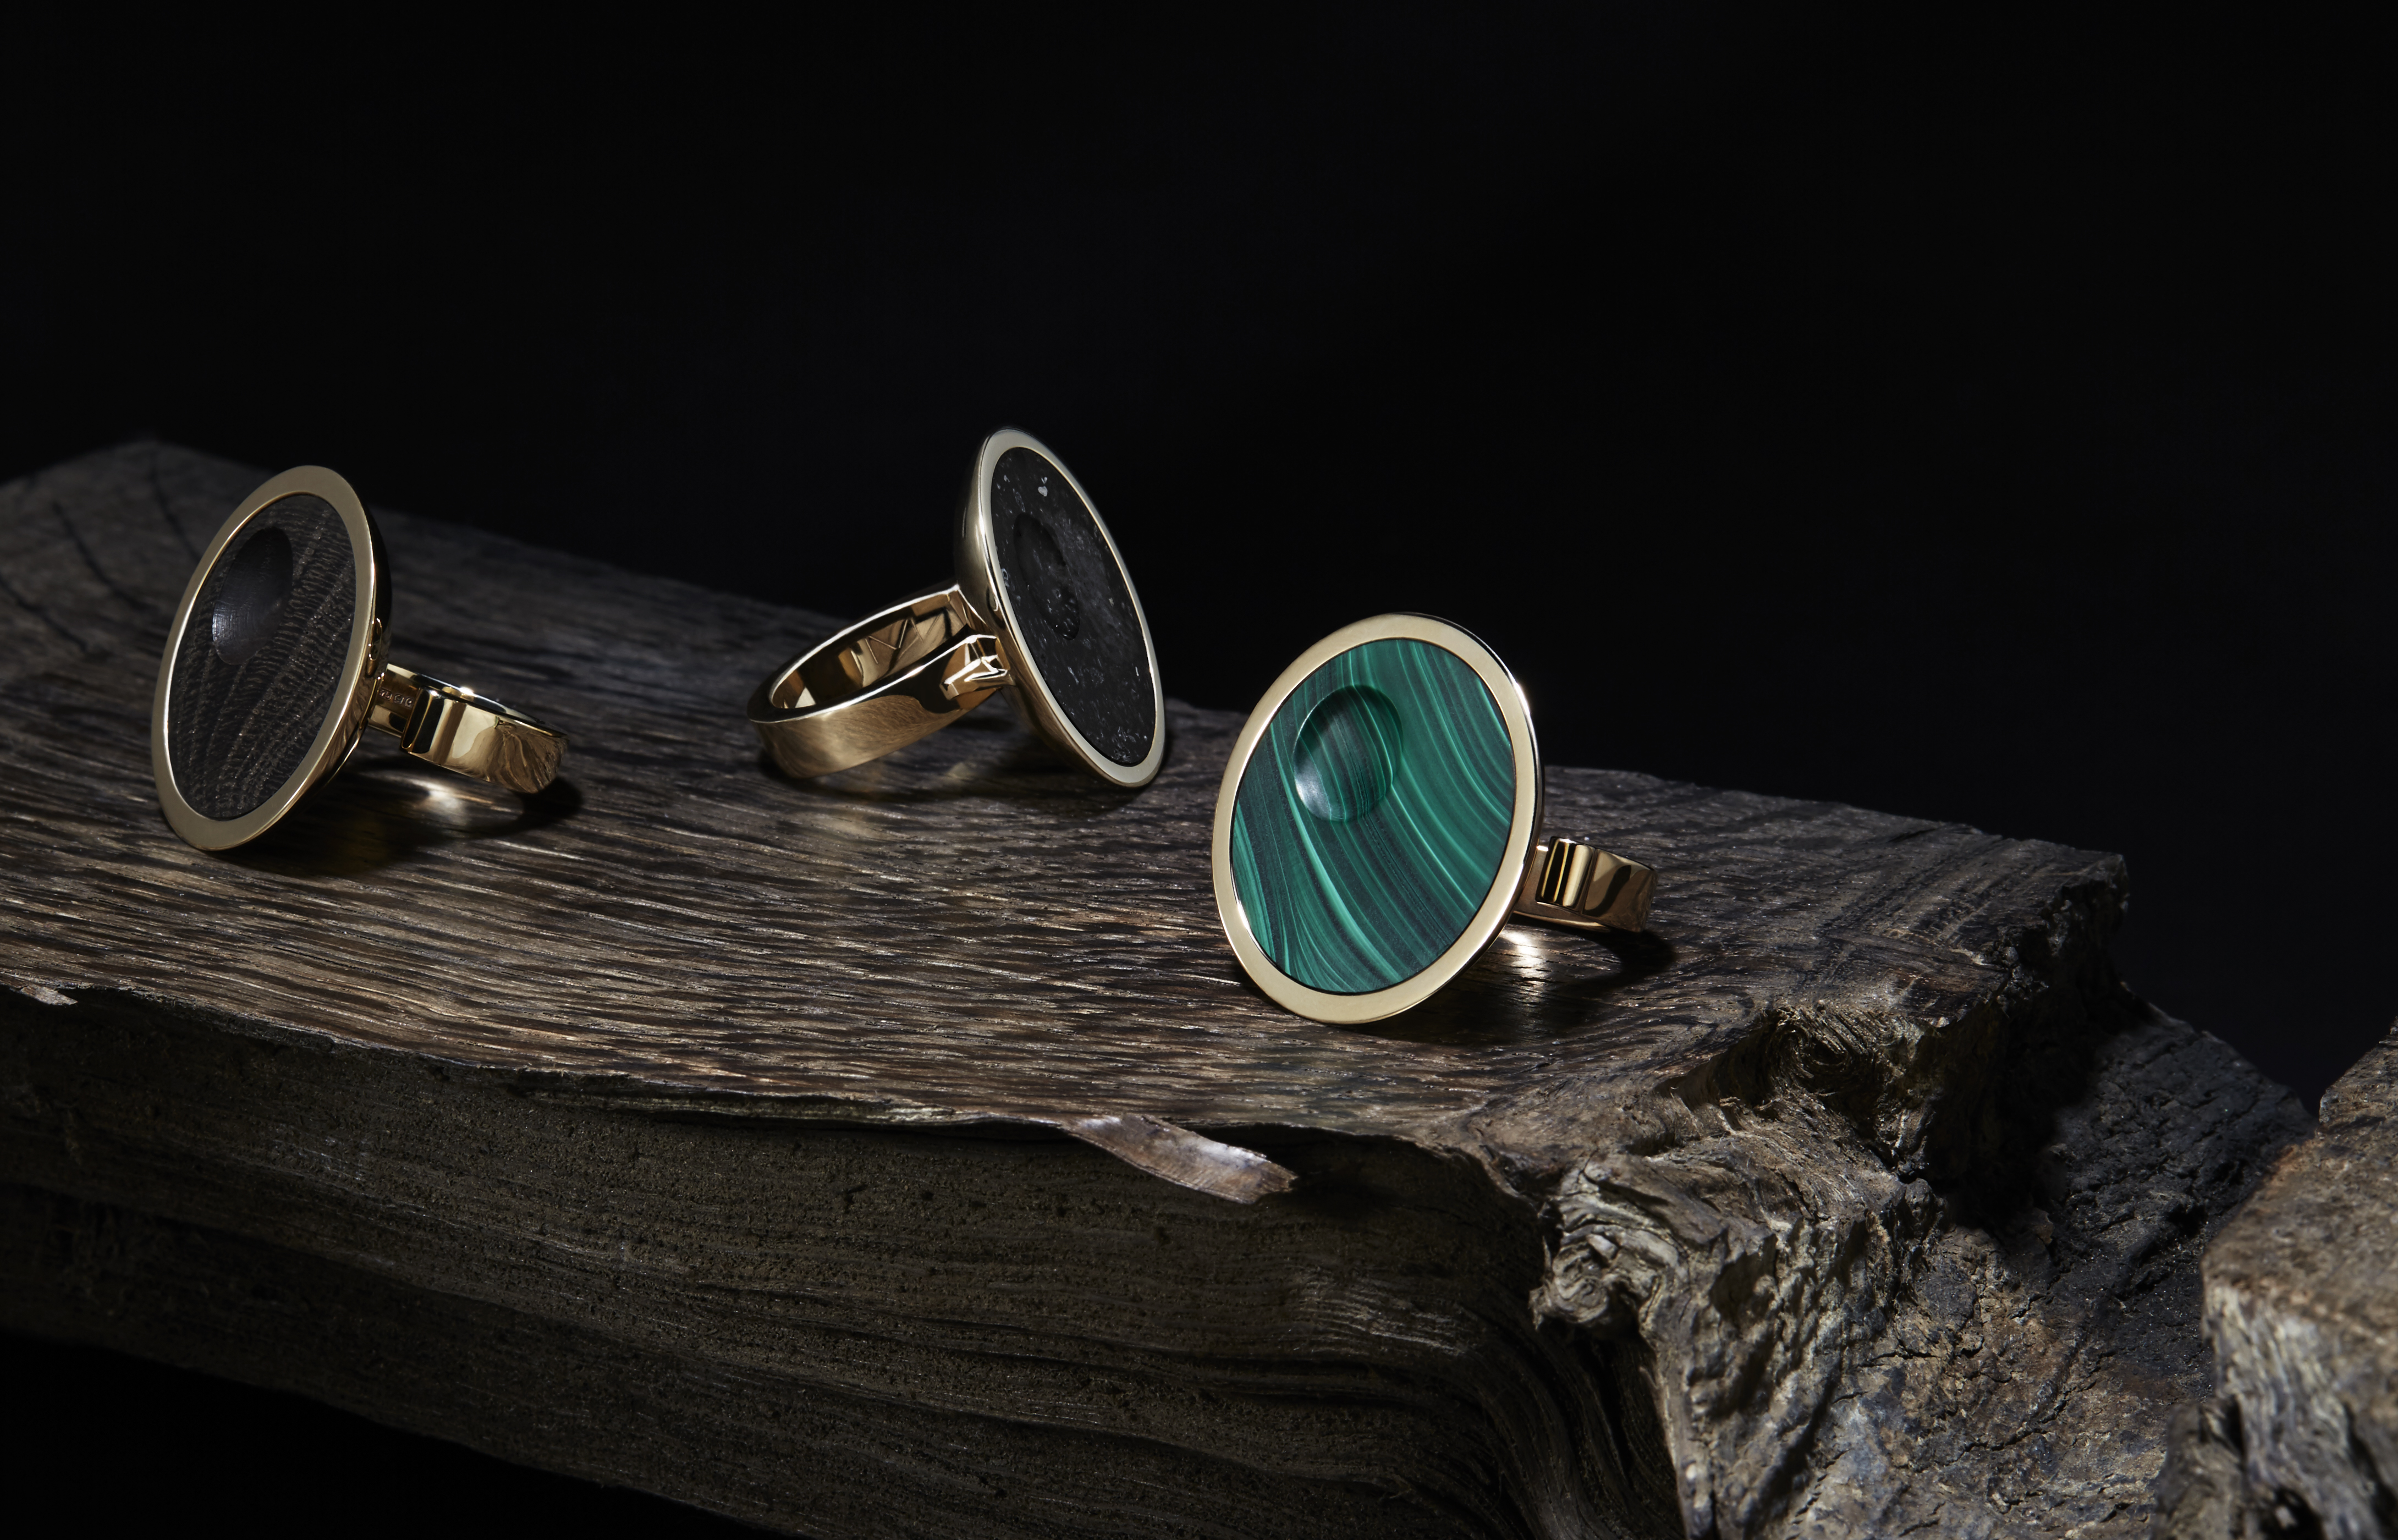 Collection of Oscar rings in solid gold, inset with malachite, eight thousand year old oak or meteorite.